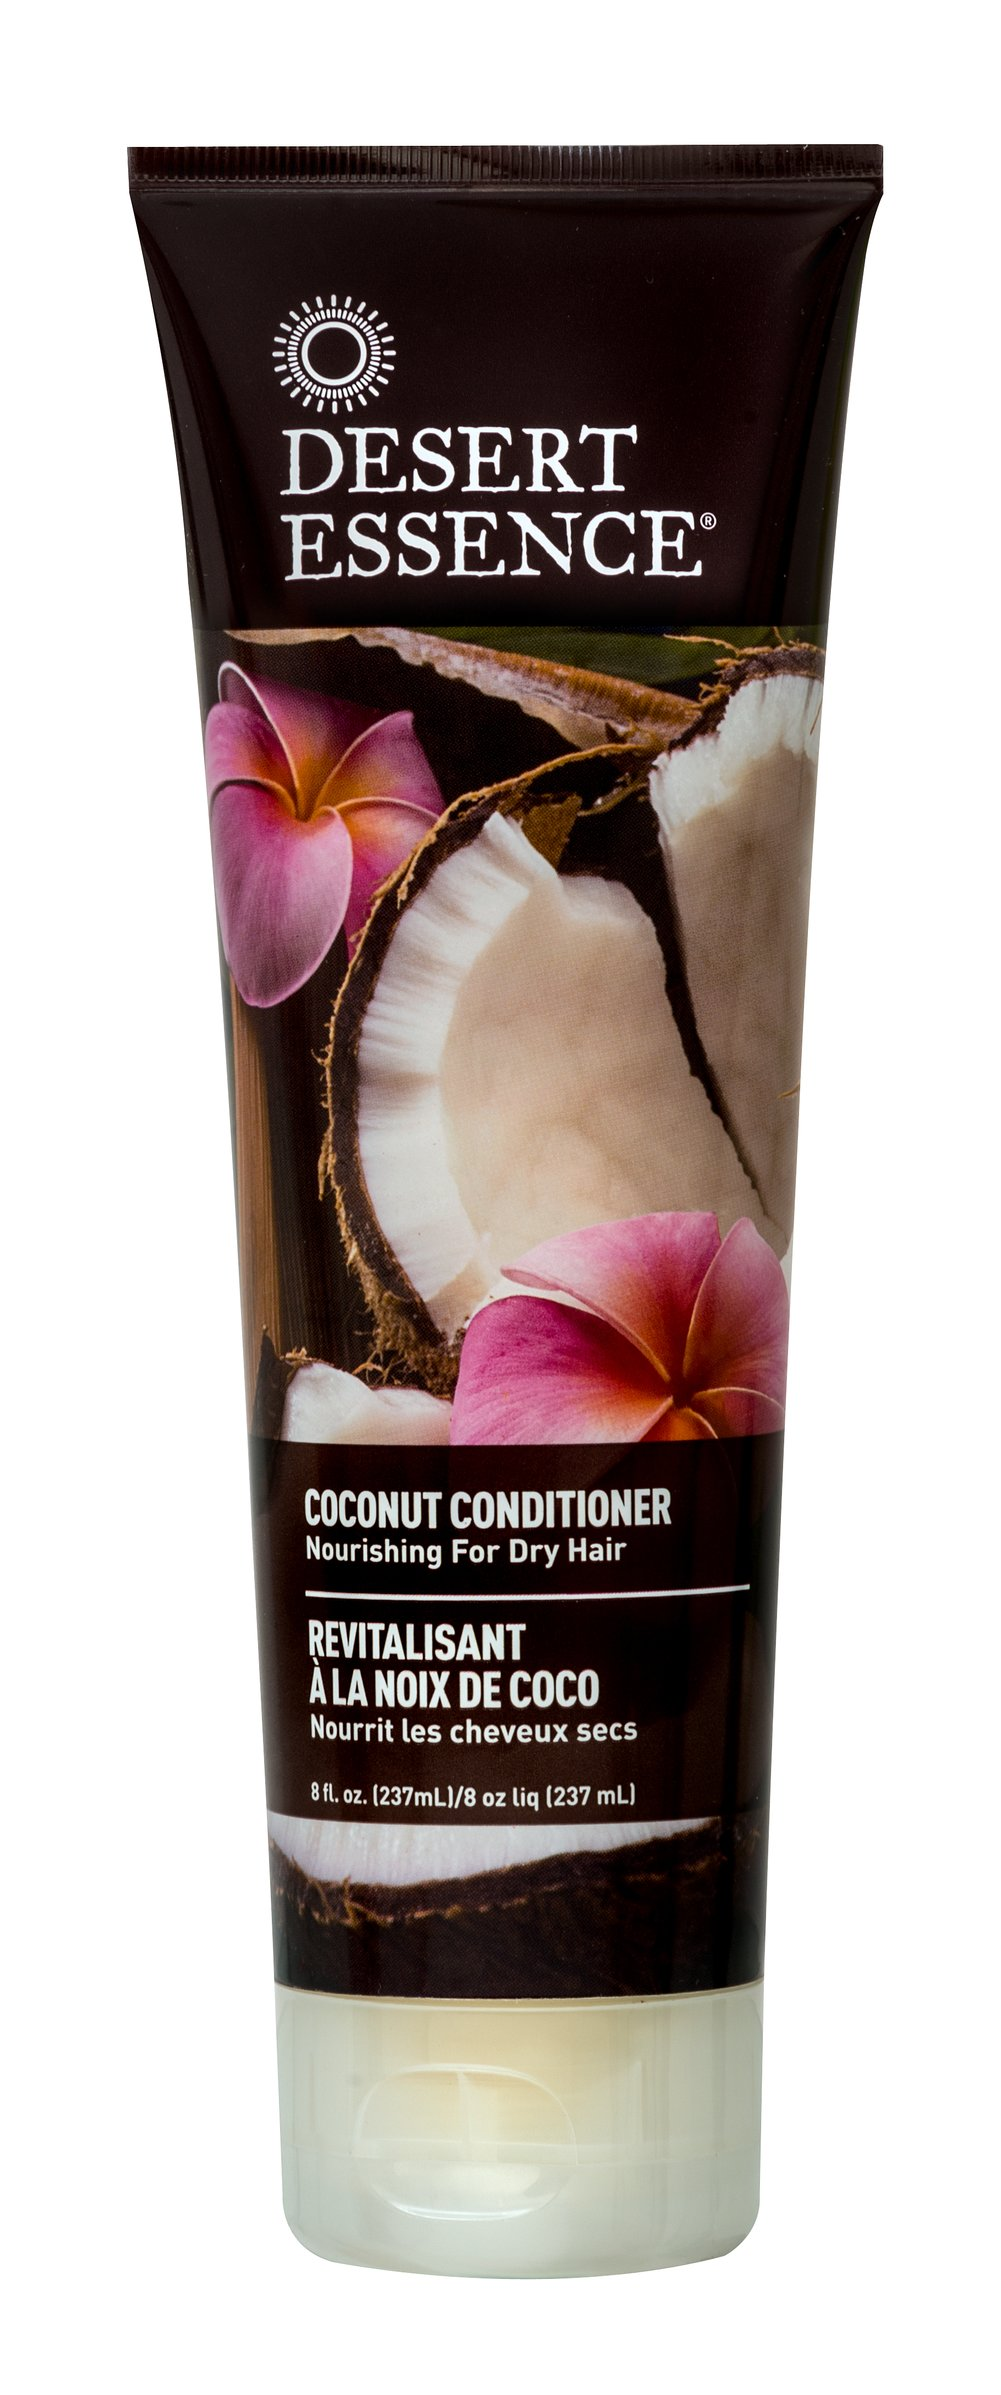 Desert Essence® Coconut Conditioner <p><strong>From the Manufacturer's Label:</strong></p><p>Nourishing for Dry Hair</p><p>Bring back shine and health to over-processed, damaged hair. Infused with organic coconut oil to provide intense moisture, smooth frizzies, and restore hair's natural luster. With continued use, hair looks revived, strong and healthy.</p><p>Manufactured by Desert Essence®.</p> 8 fl oz Conditioner  $5.8